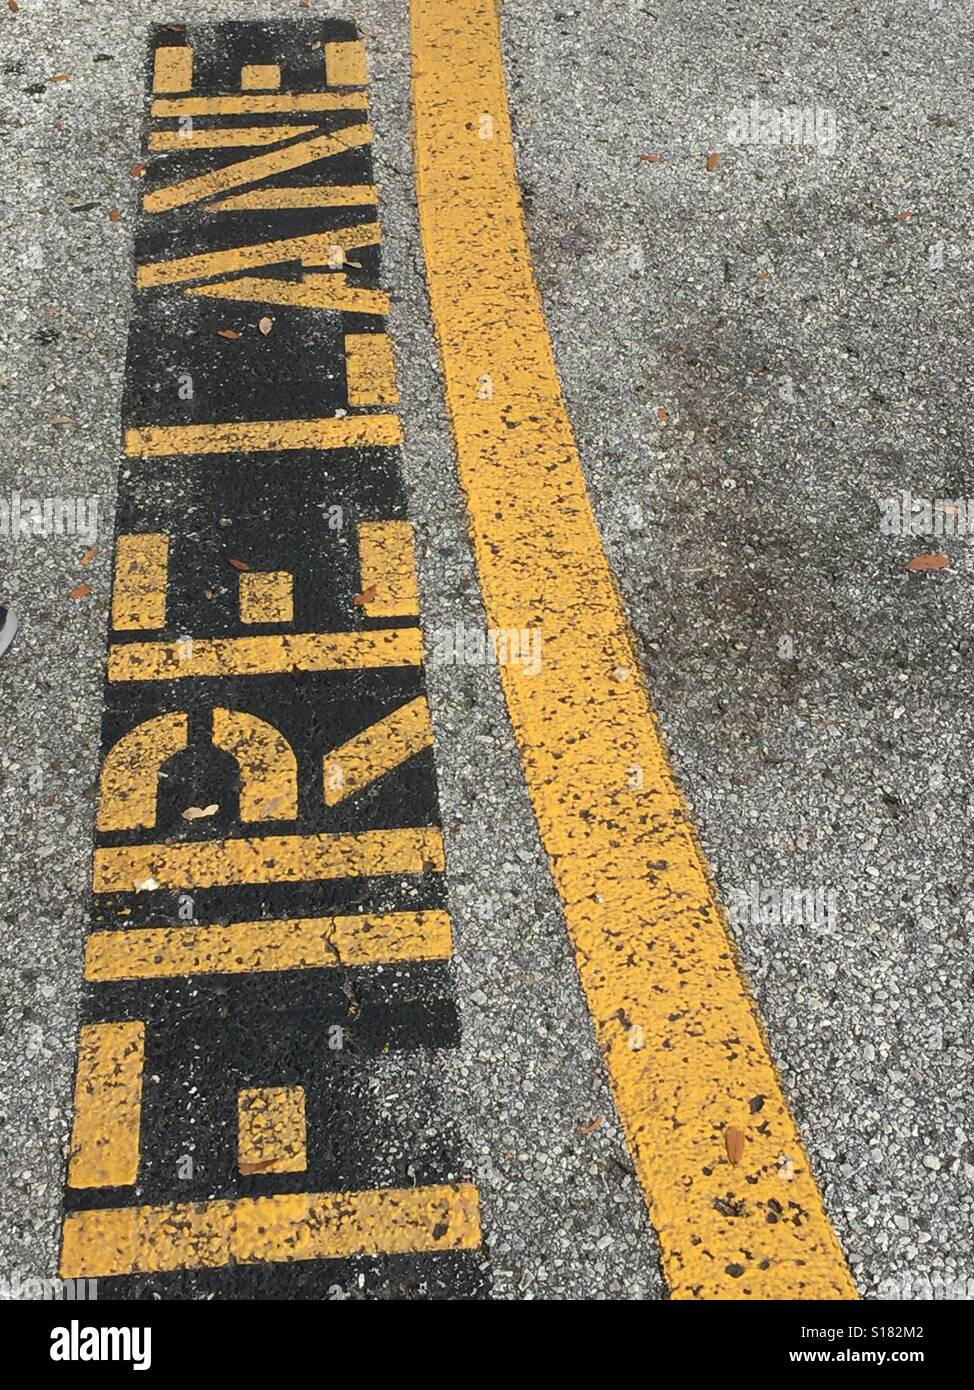 Fire lane painted in yellow letters on the road - Stock Image